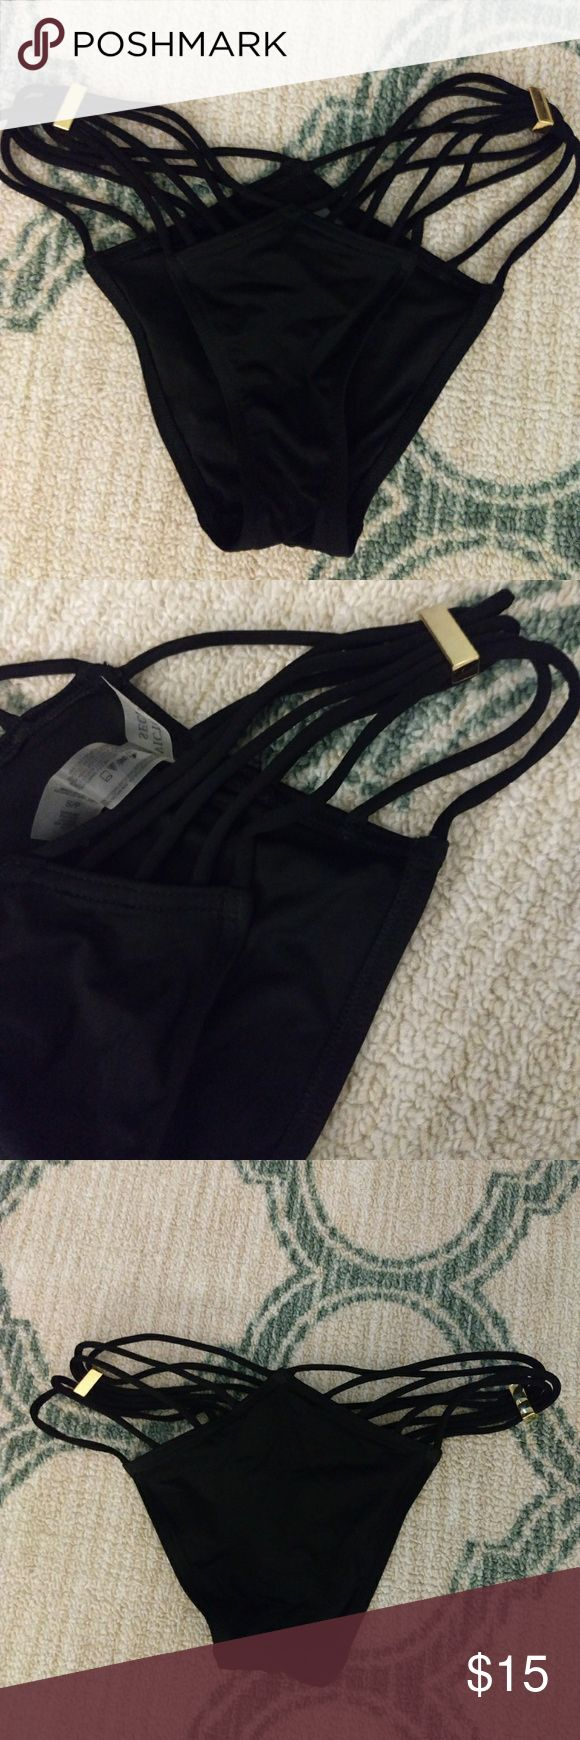 NWOT Victoria's Secret bathing suit bottoms Black strappy bathing suit bottoms with adjustable gold embellishments. They move to allow more strap to the back or front. Very revealing bottoms. Cheeky cut. Victoria's Secret Swim Bikinis